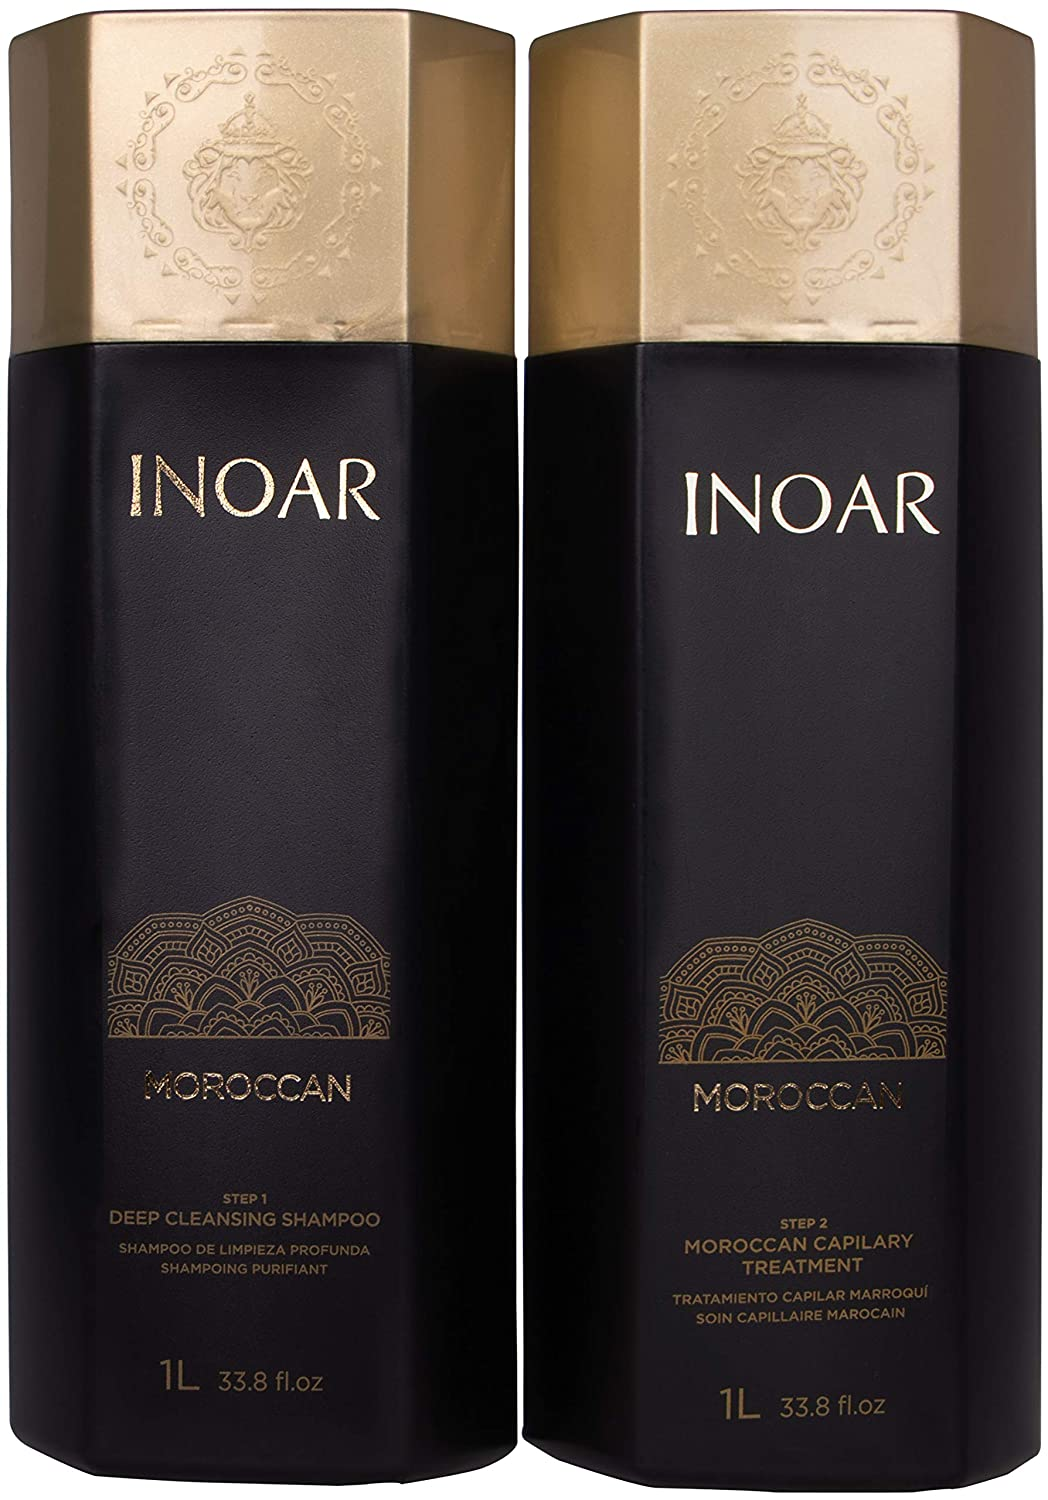 INOAR PROFESSIONAL - Smoothing System - Deep Cleansing Shampoo & Treatment Set (33.8 fl. oz.)